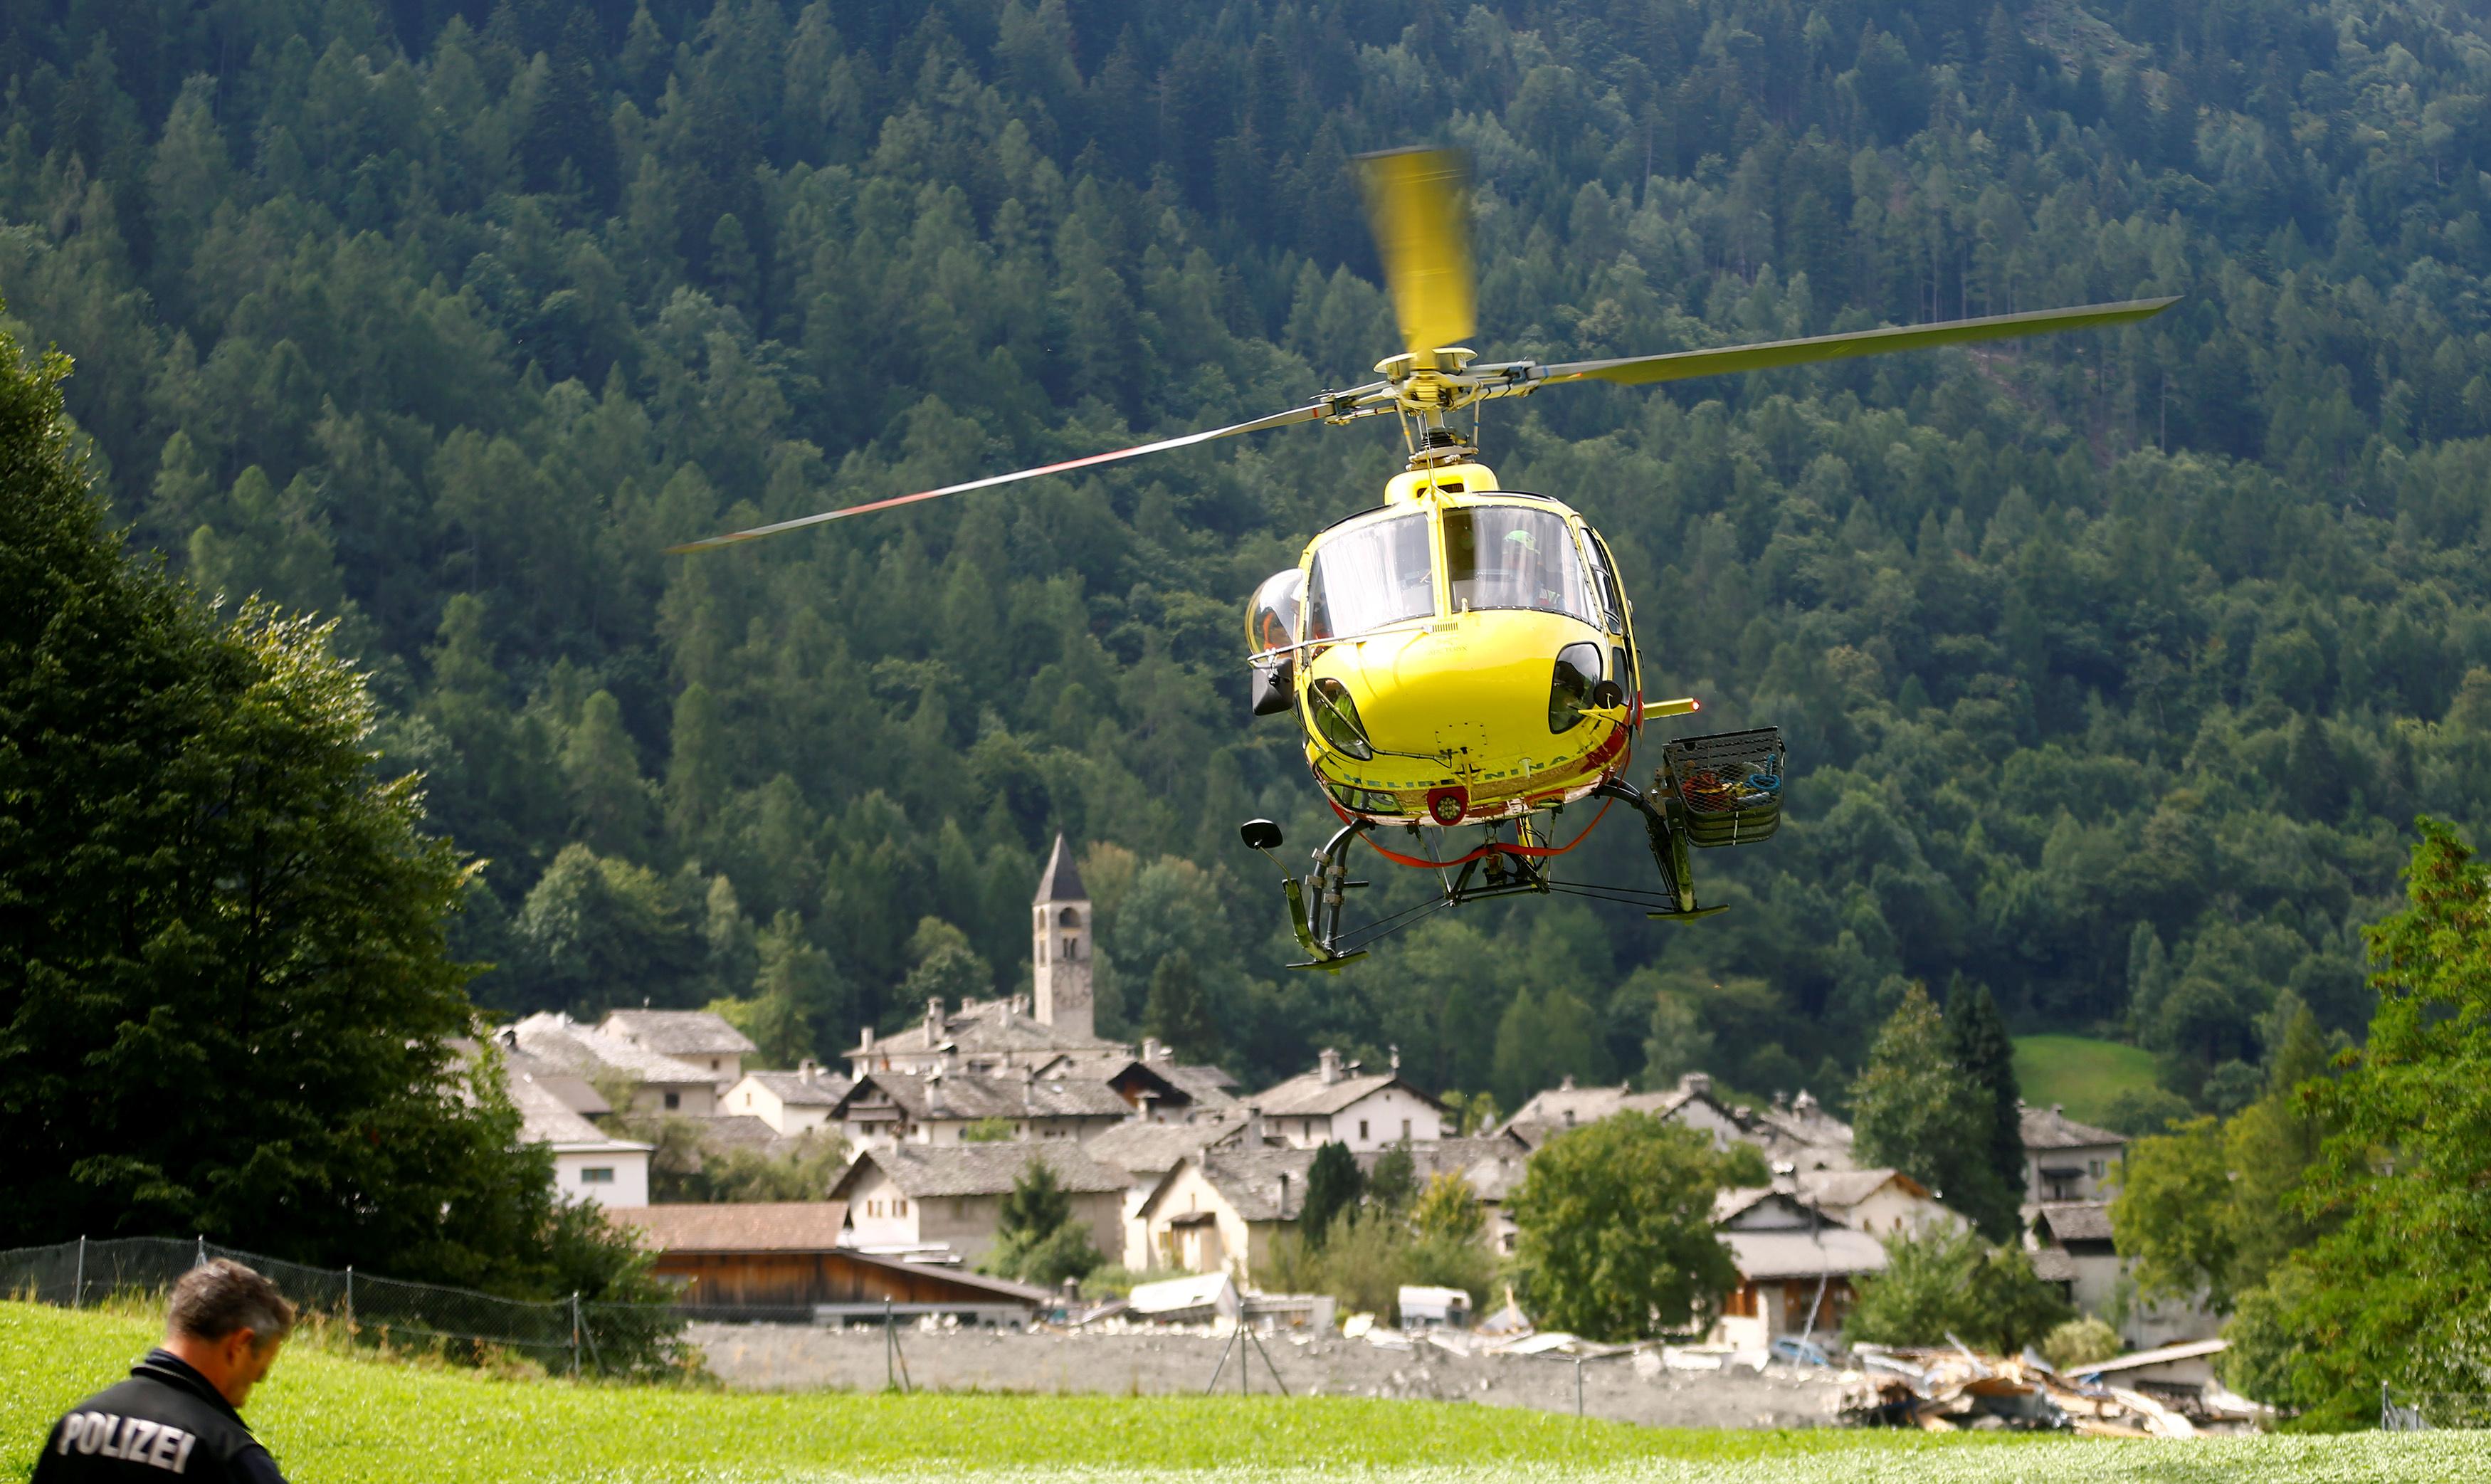 A helicopter of HeliBernina takes off nearby the village of Bondo in Switzerland, on Aug. 26, 2017. (REUTERS/Arnd Wiegmann)